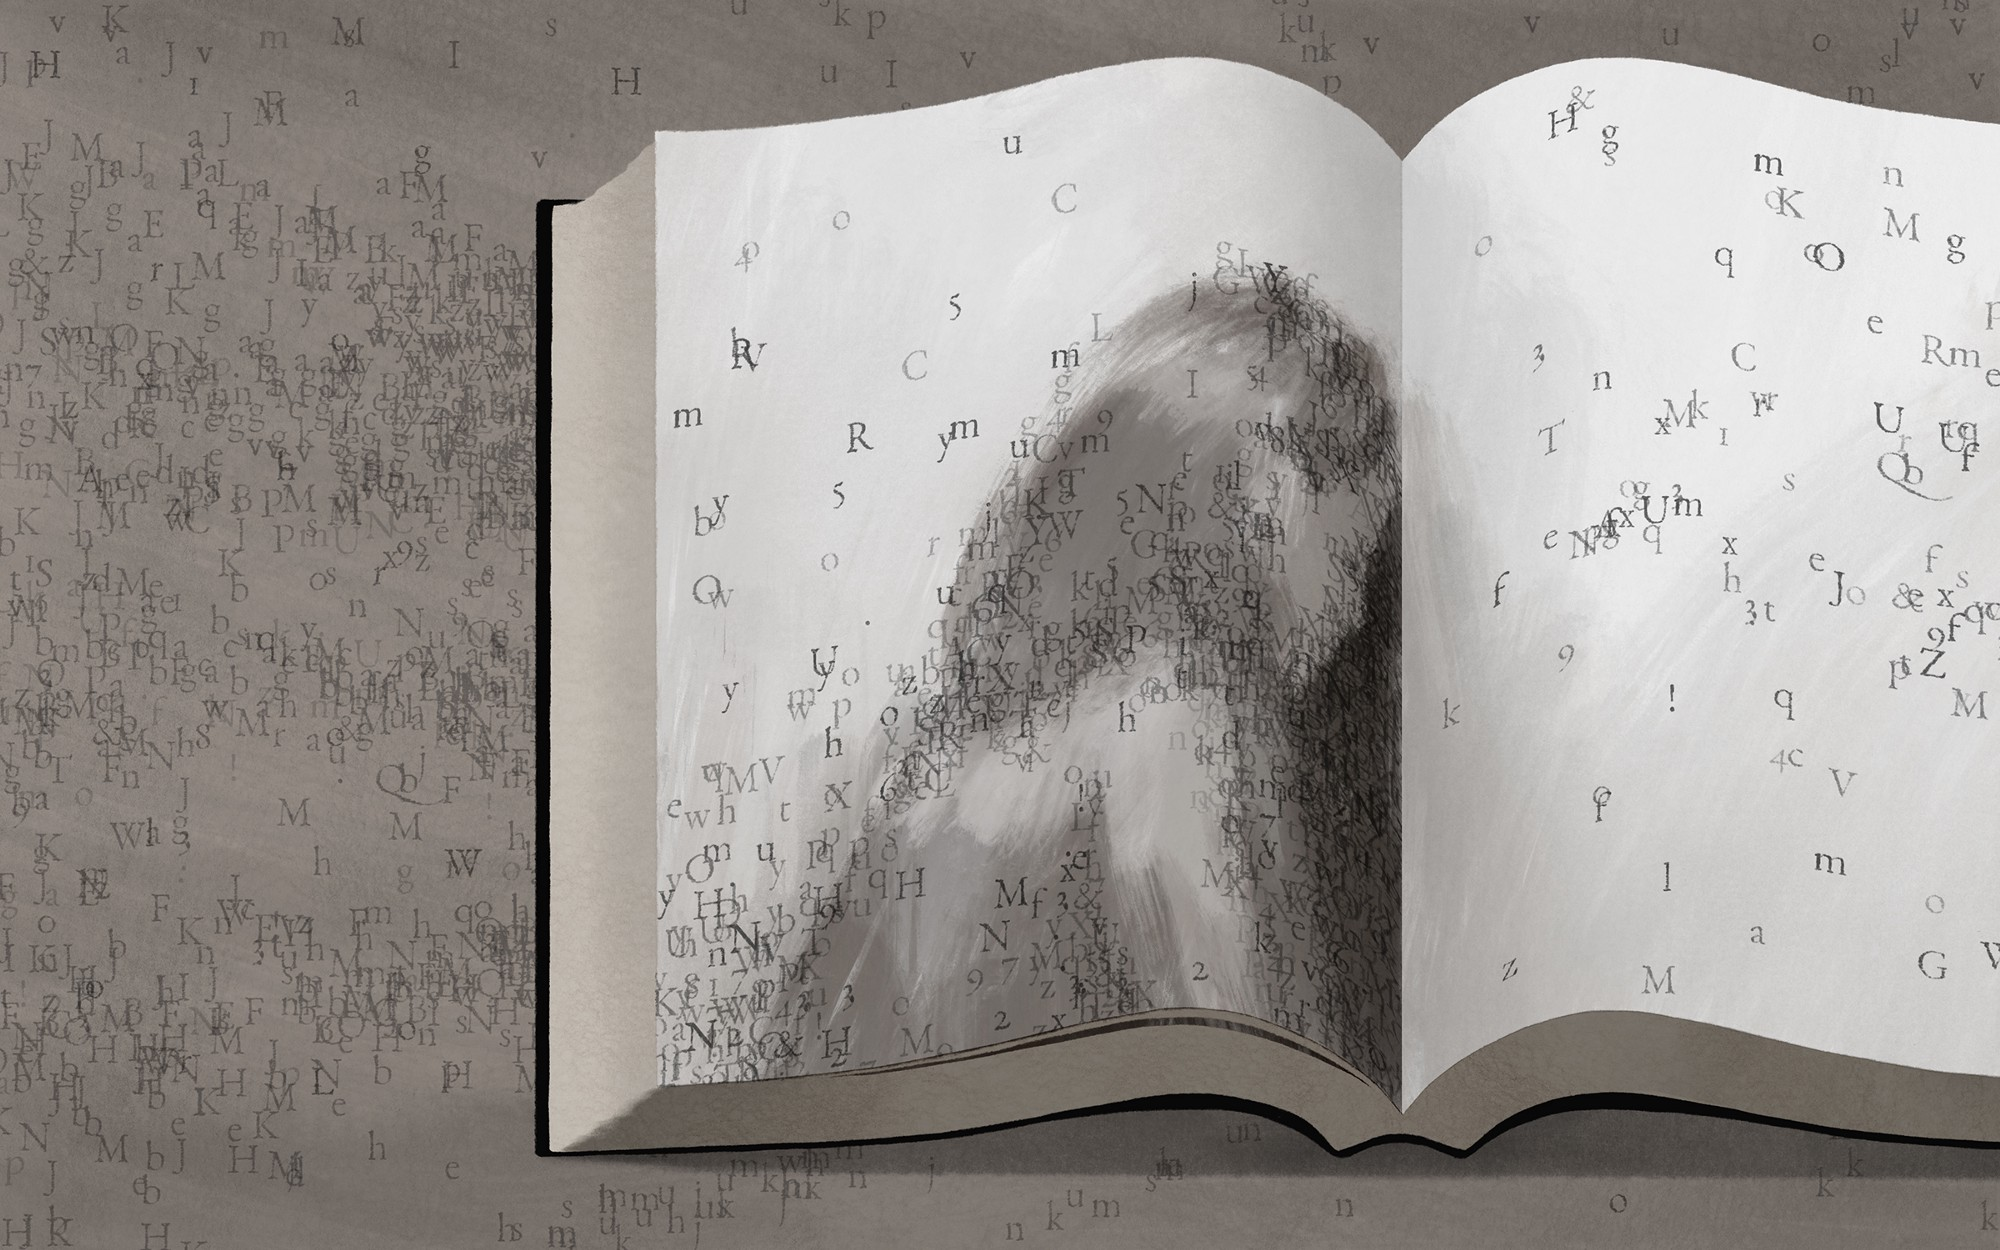 An illustration of an open book featuring a woman, with hundreds of individual letters scattered across on and off the page